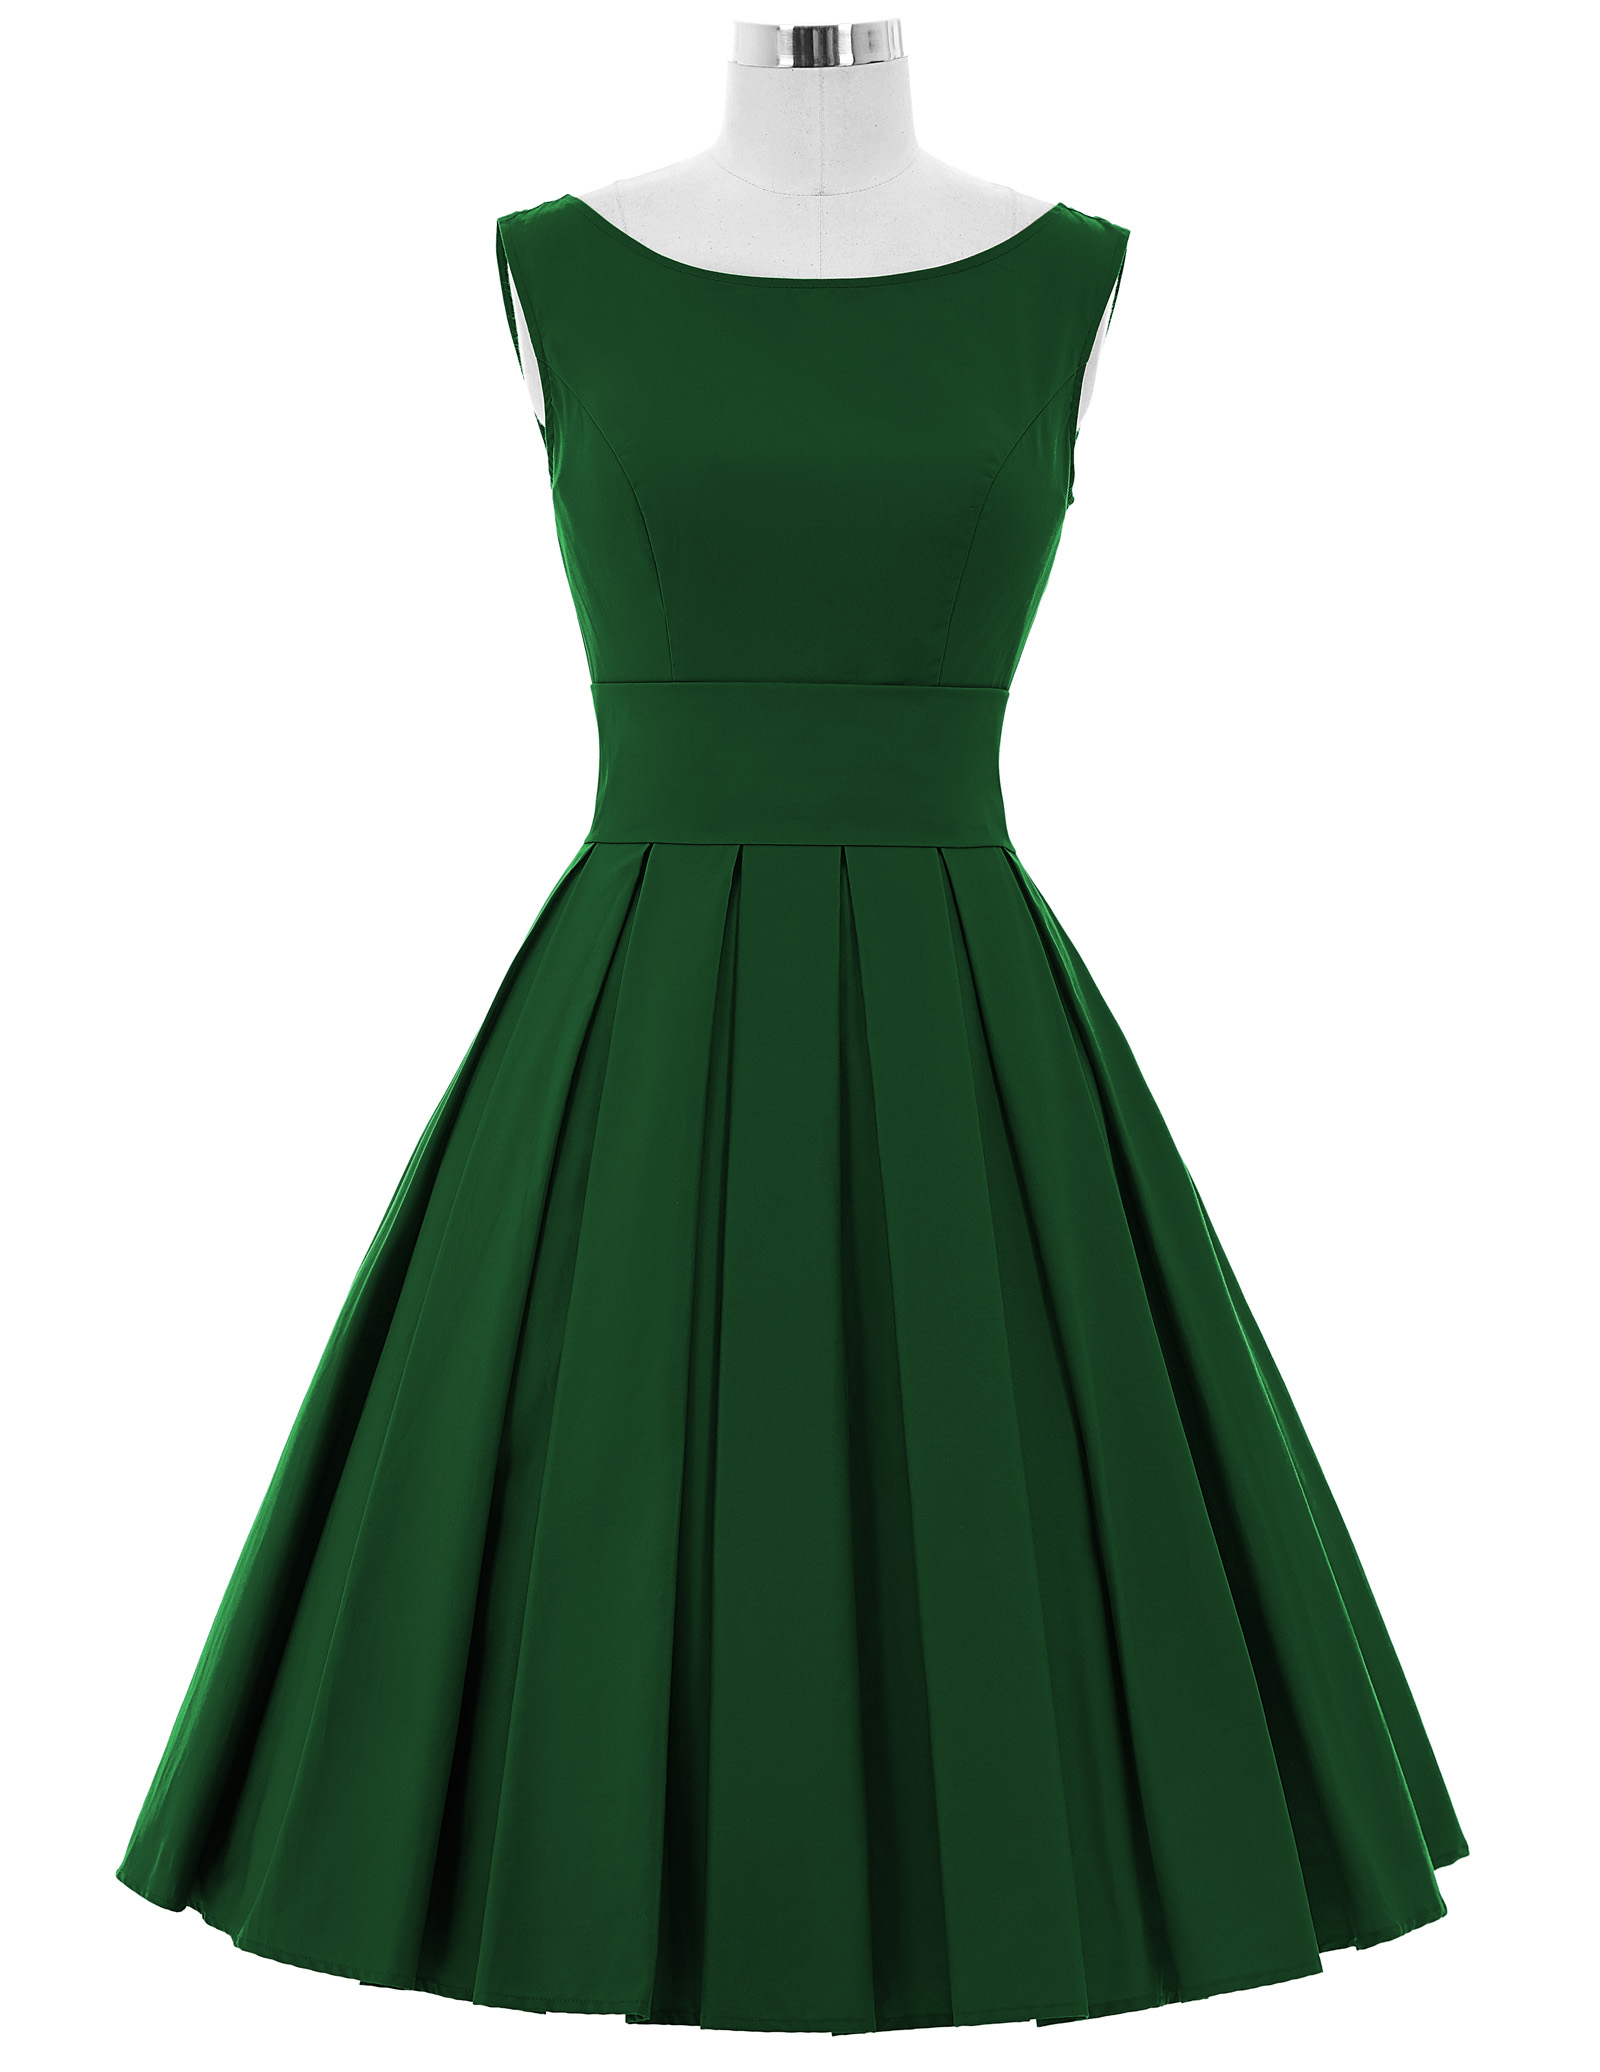 Summer Solid Pockets Dresses Plus Size Cocoon Sleeveless: Swing Dresses Women Summer Solid Color Retro Vintage